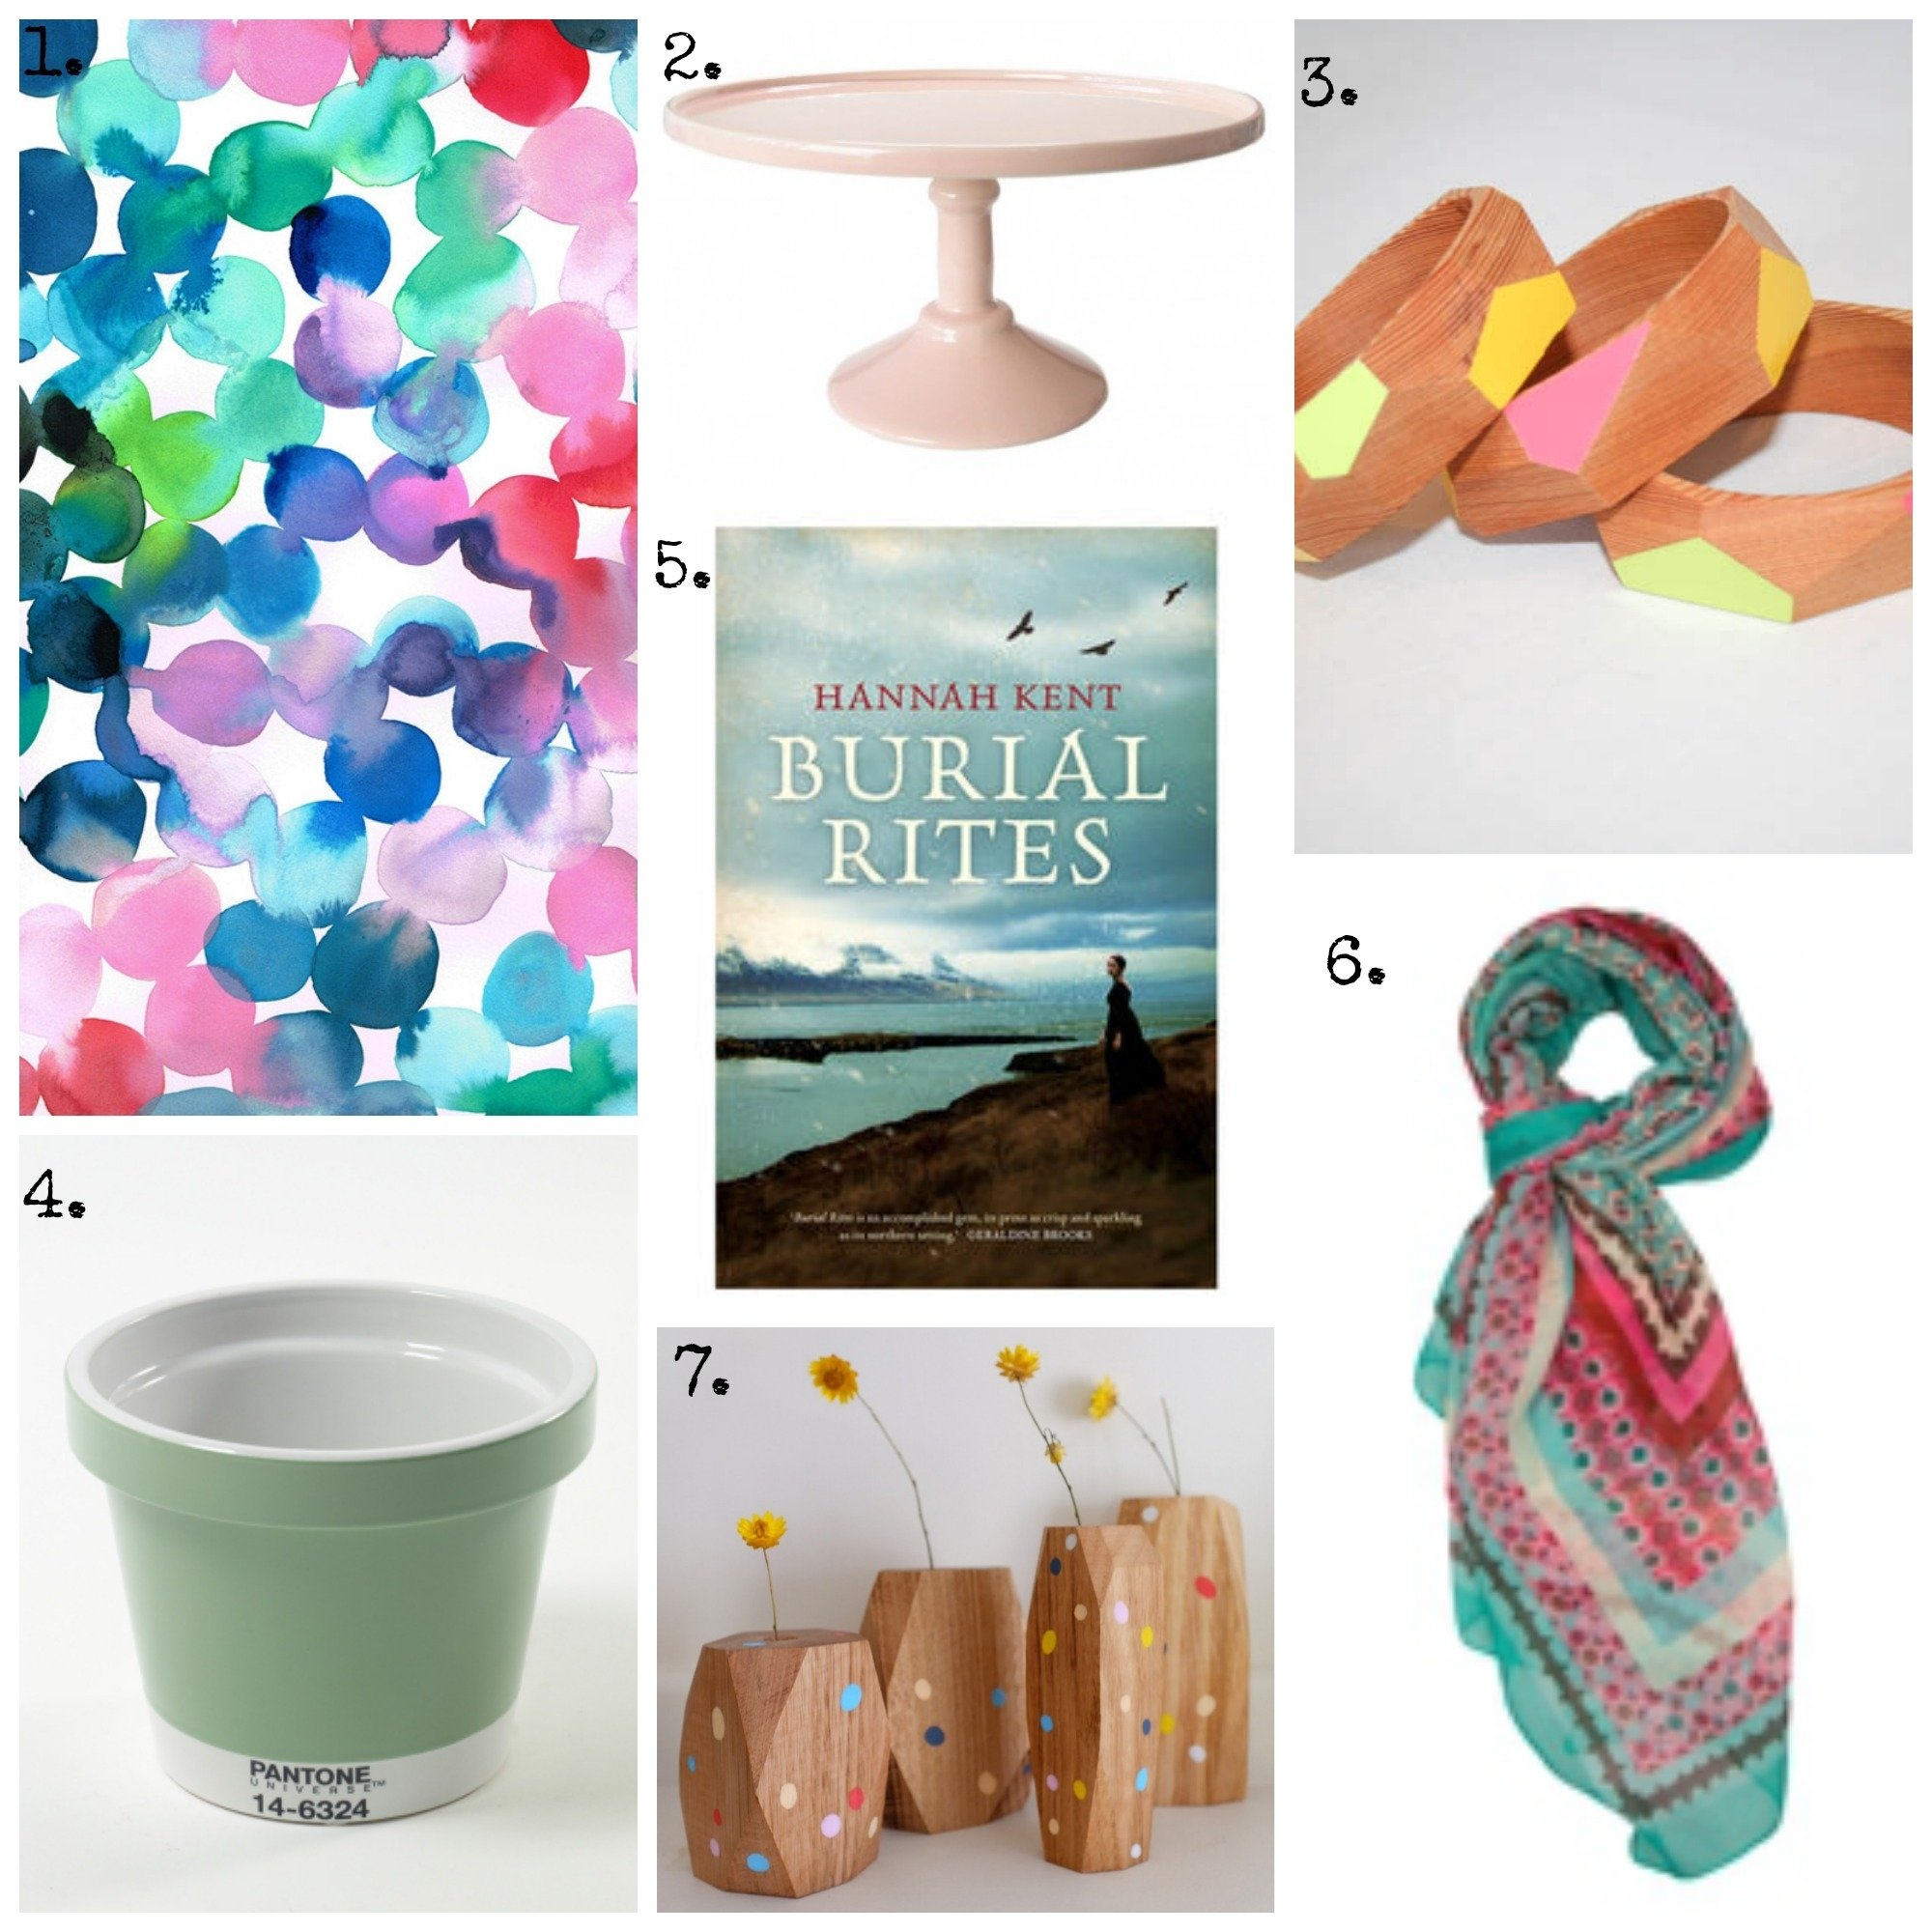 10 Beautiful Gift Ideas For A Woman the top 7 gorgeous gift ideas for women style shenanigans 14 2021